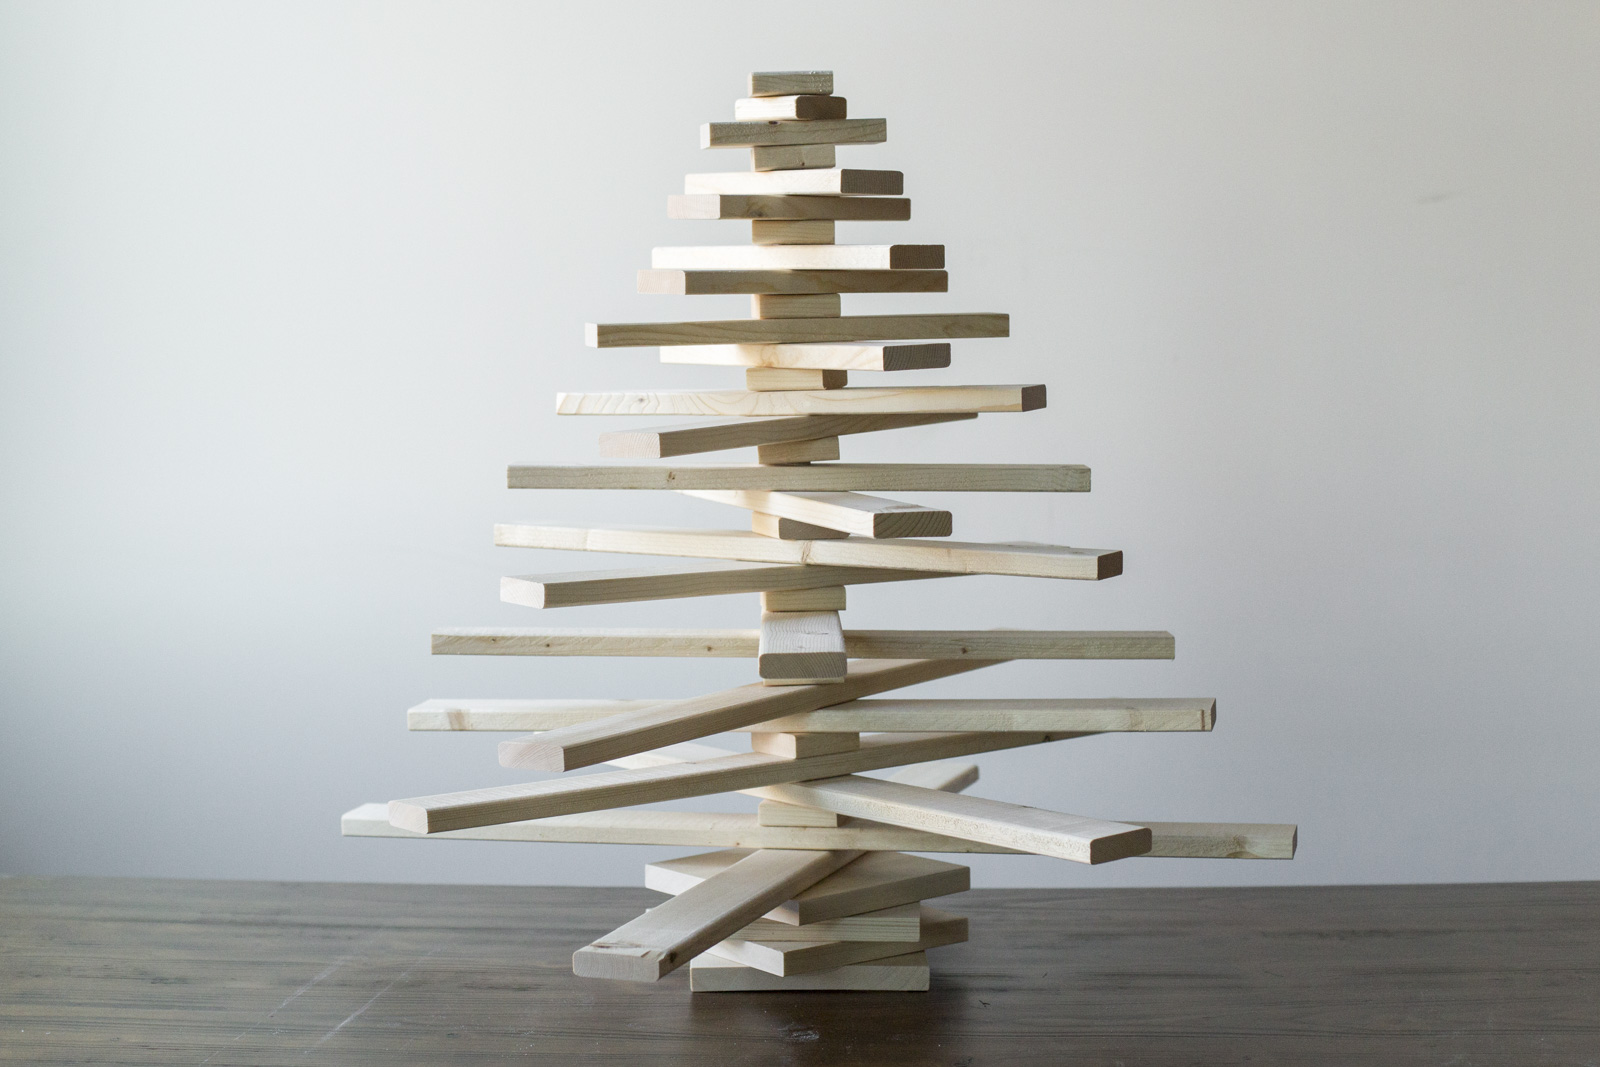 12 days of diy how to make a wooden christmas tree home improvement projects to inspire and be inspired dunn diy seattle - Wooden Christmas Tree